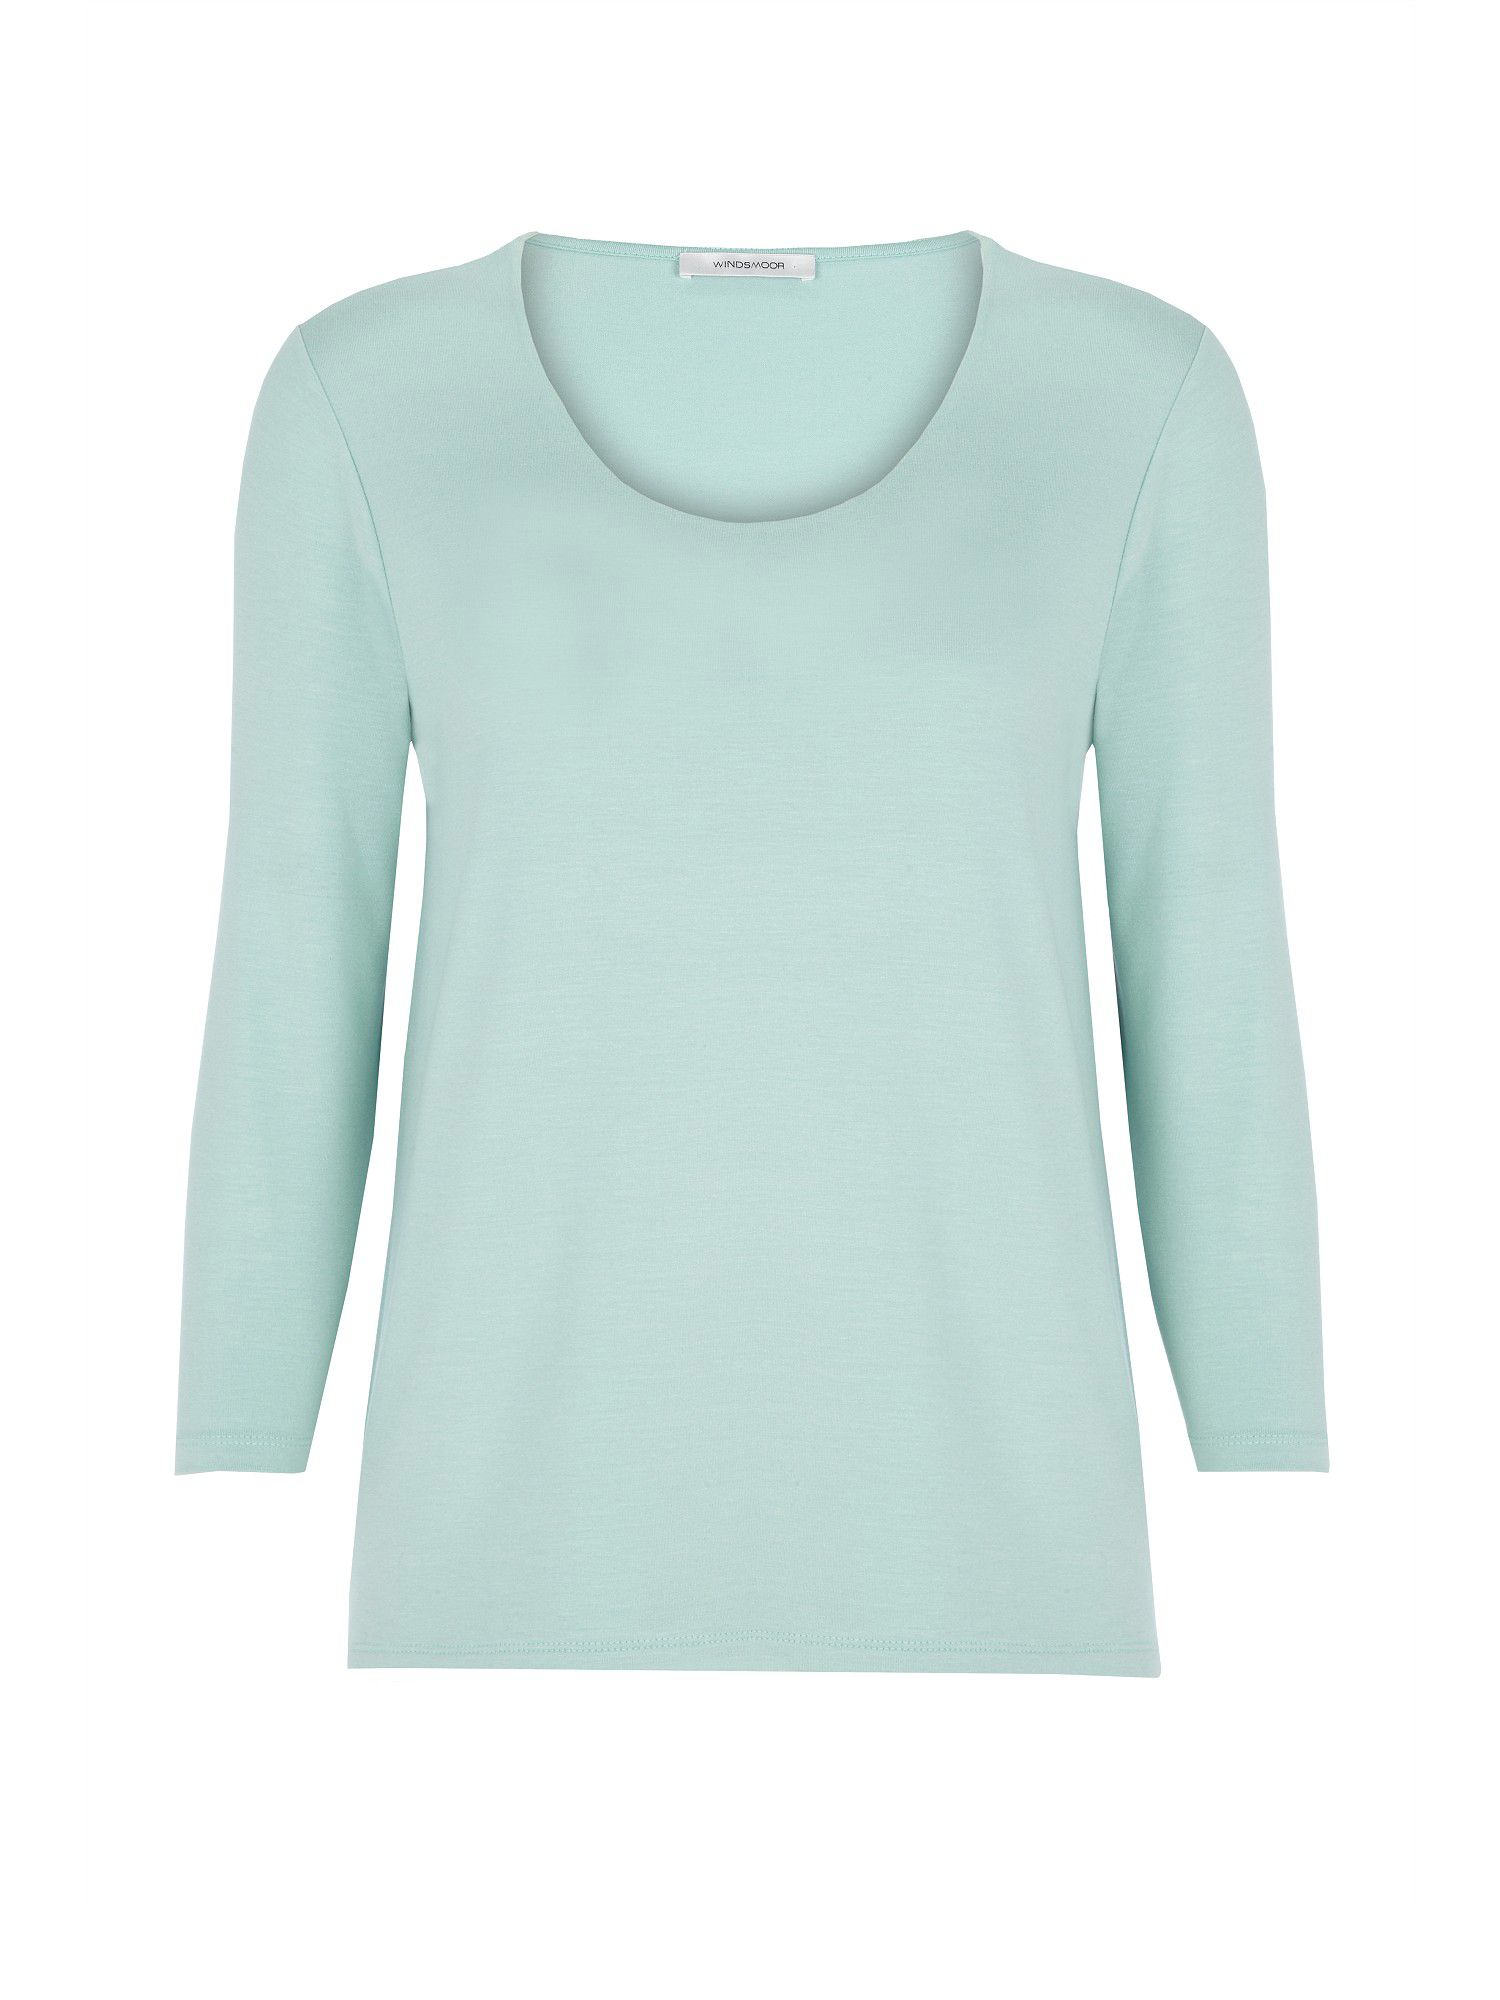 Mint scoop neck jersey top